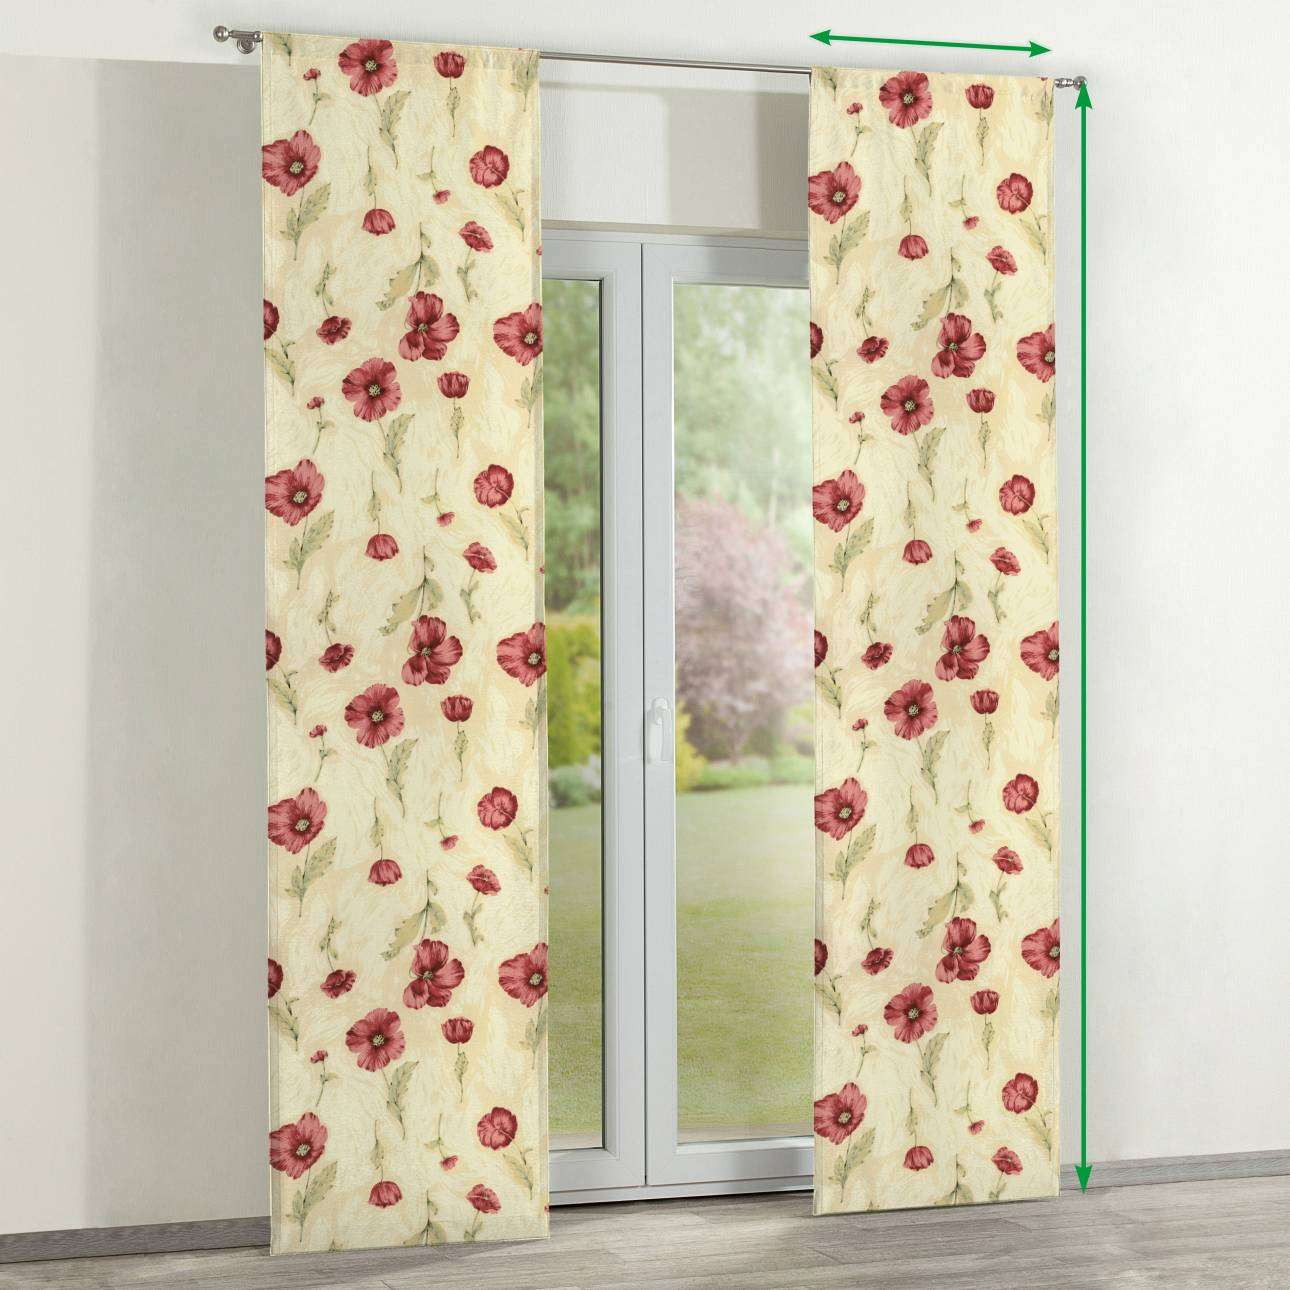 Slot panel curtains – Set of 2 in collection Flowers, fabric: 303-01